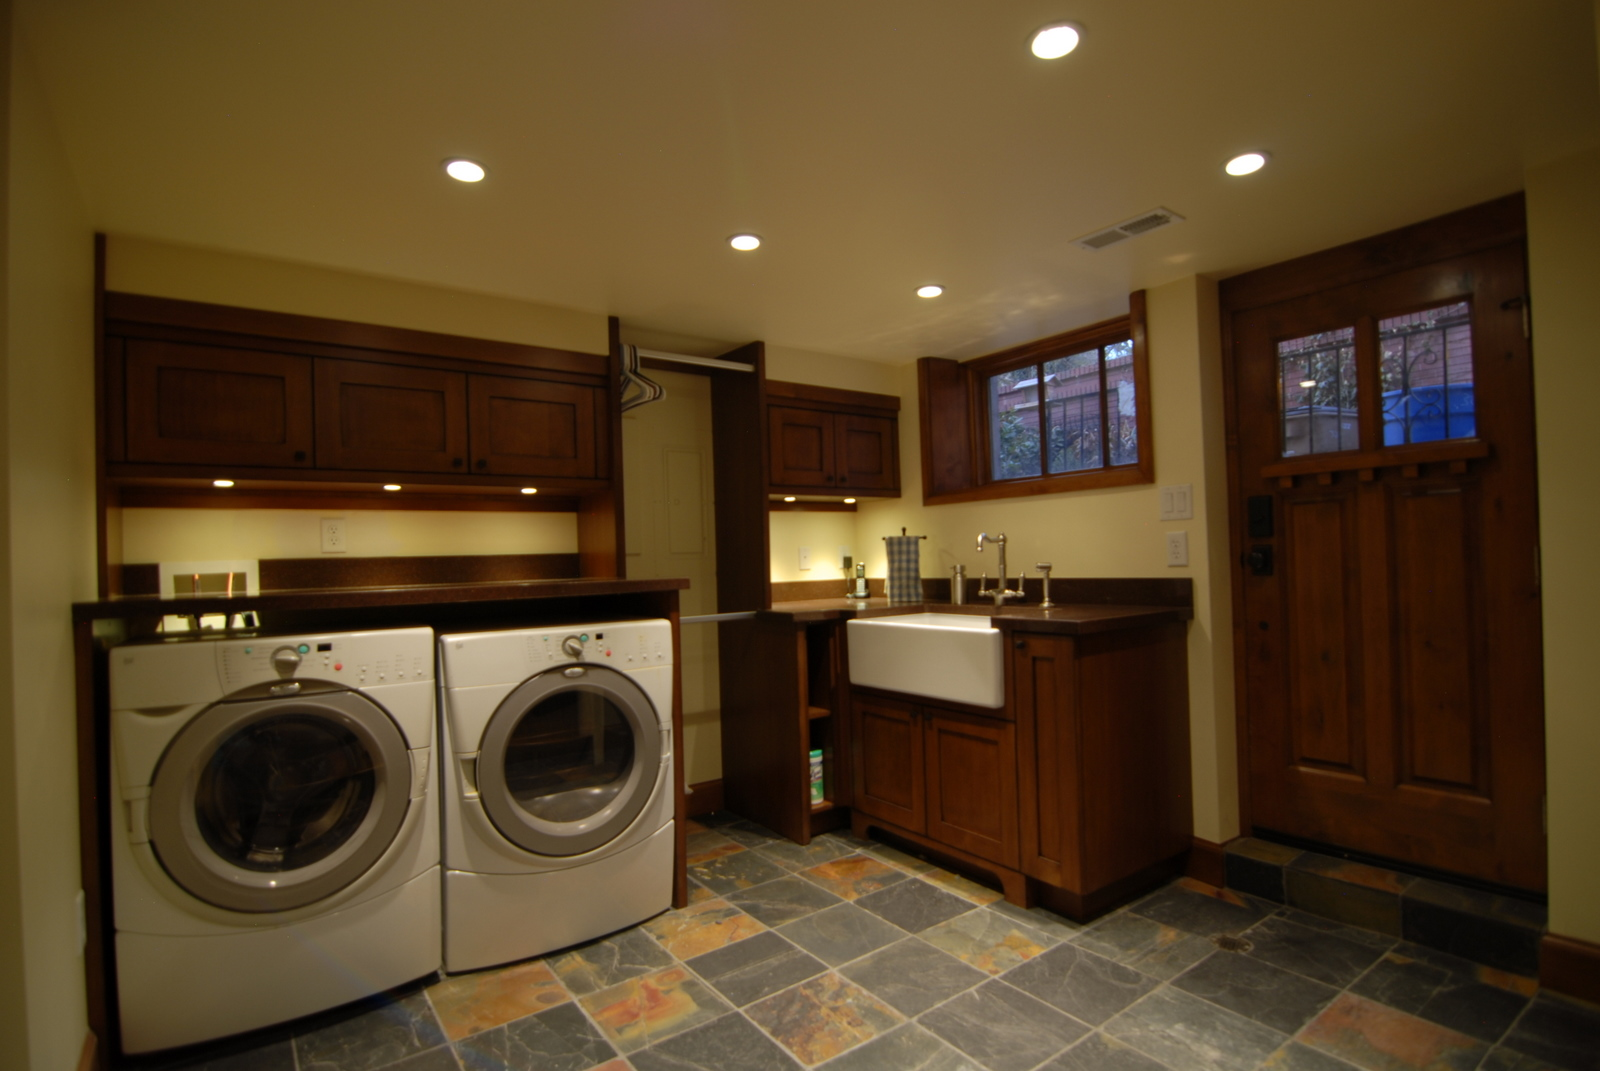 Enzy living laundry room basement in a craftsman home for Laundry home